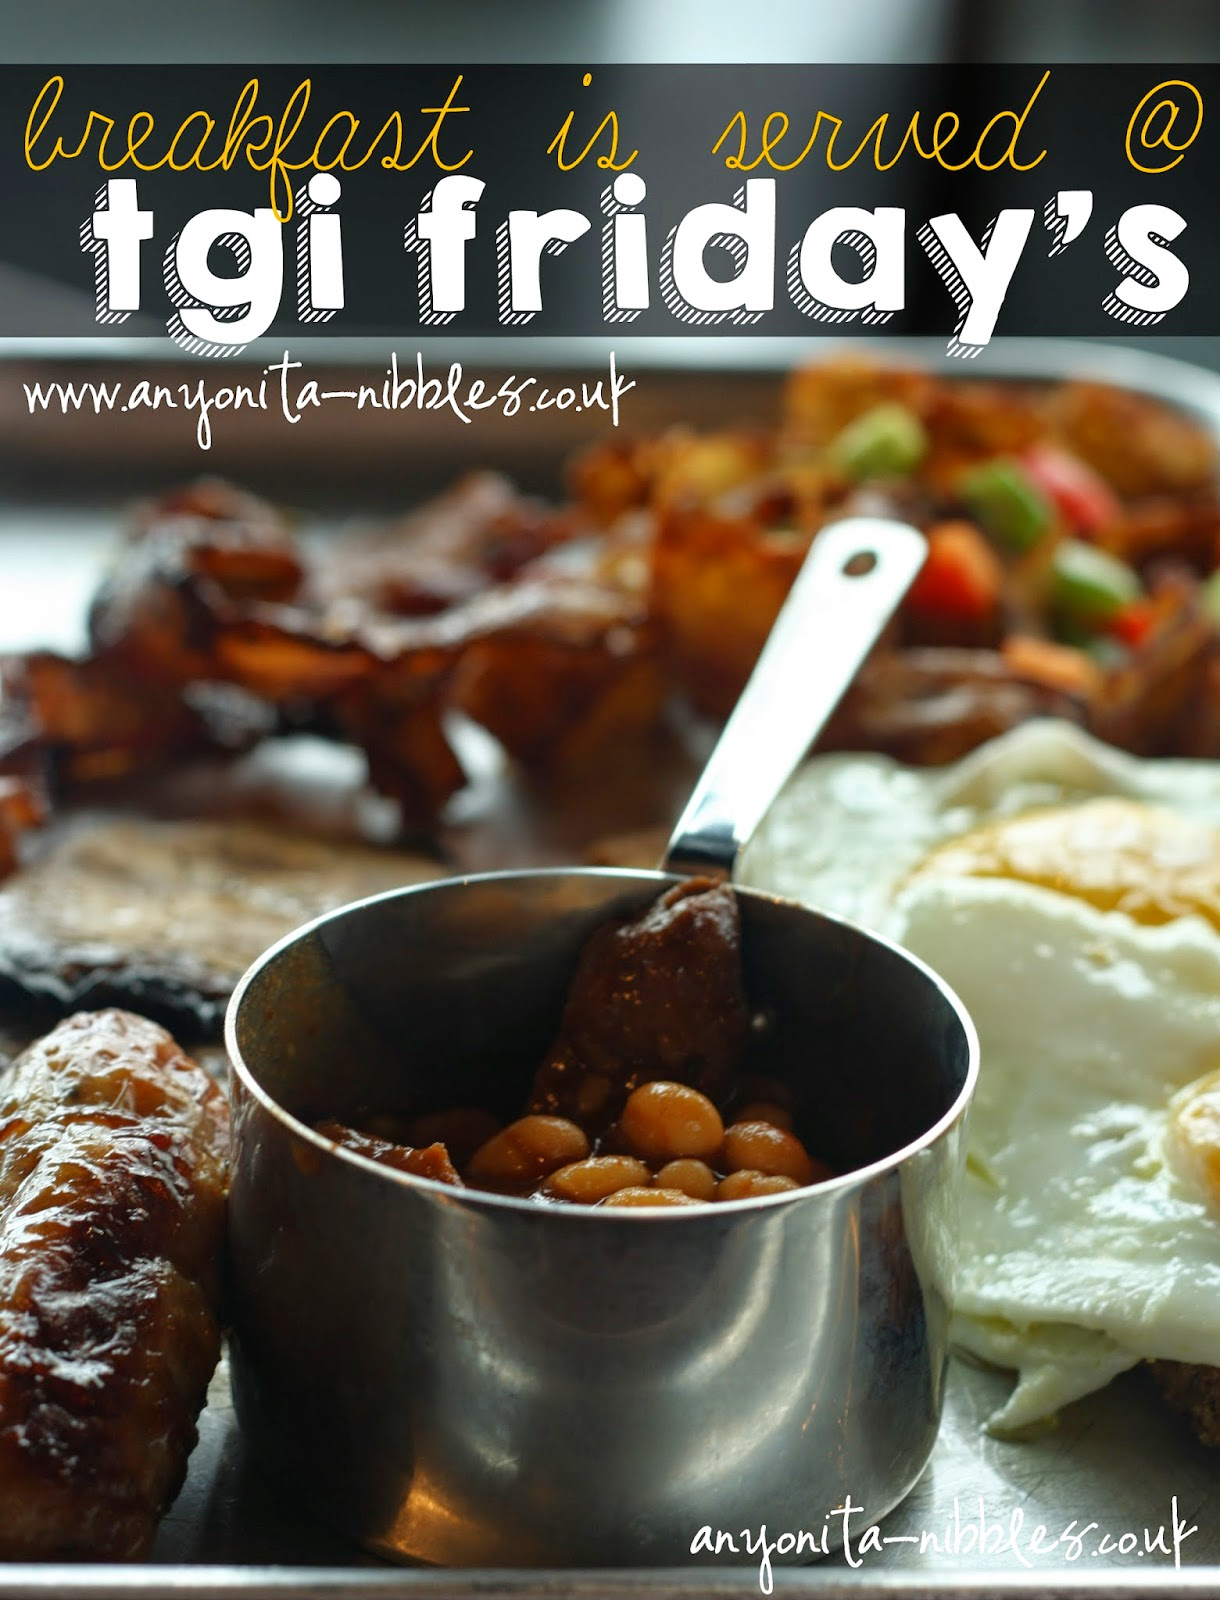 Breakfast is served! TGI Friday's | Anyonita-nibbles.co.uk